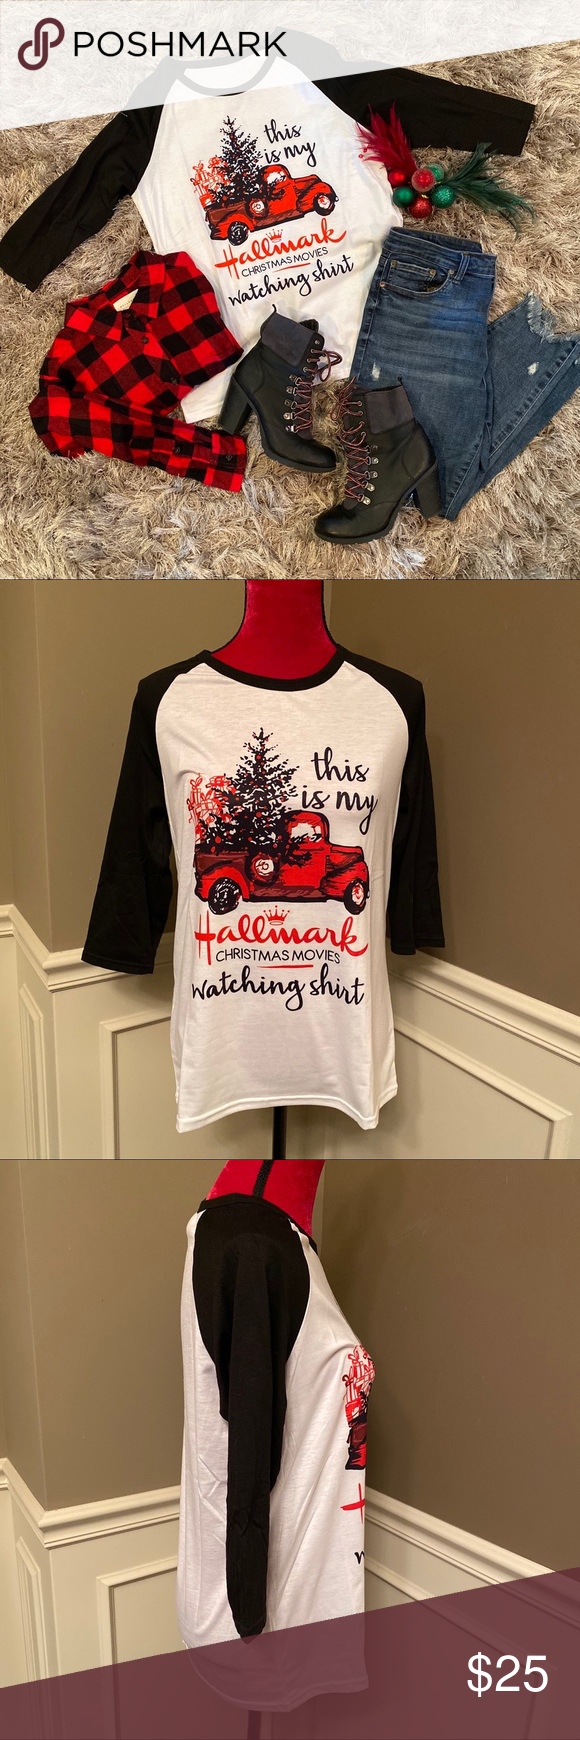 HALLMARK CHRISTMAS MOVIES SHIRT (Black/White) NEW